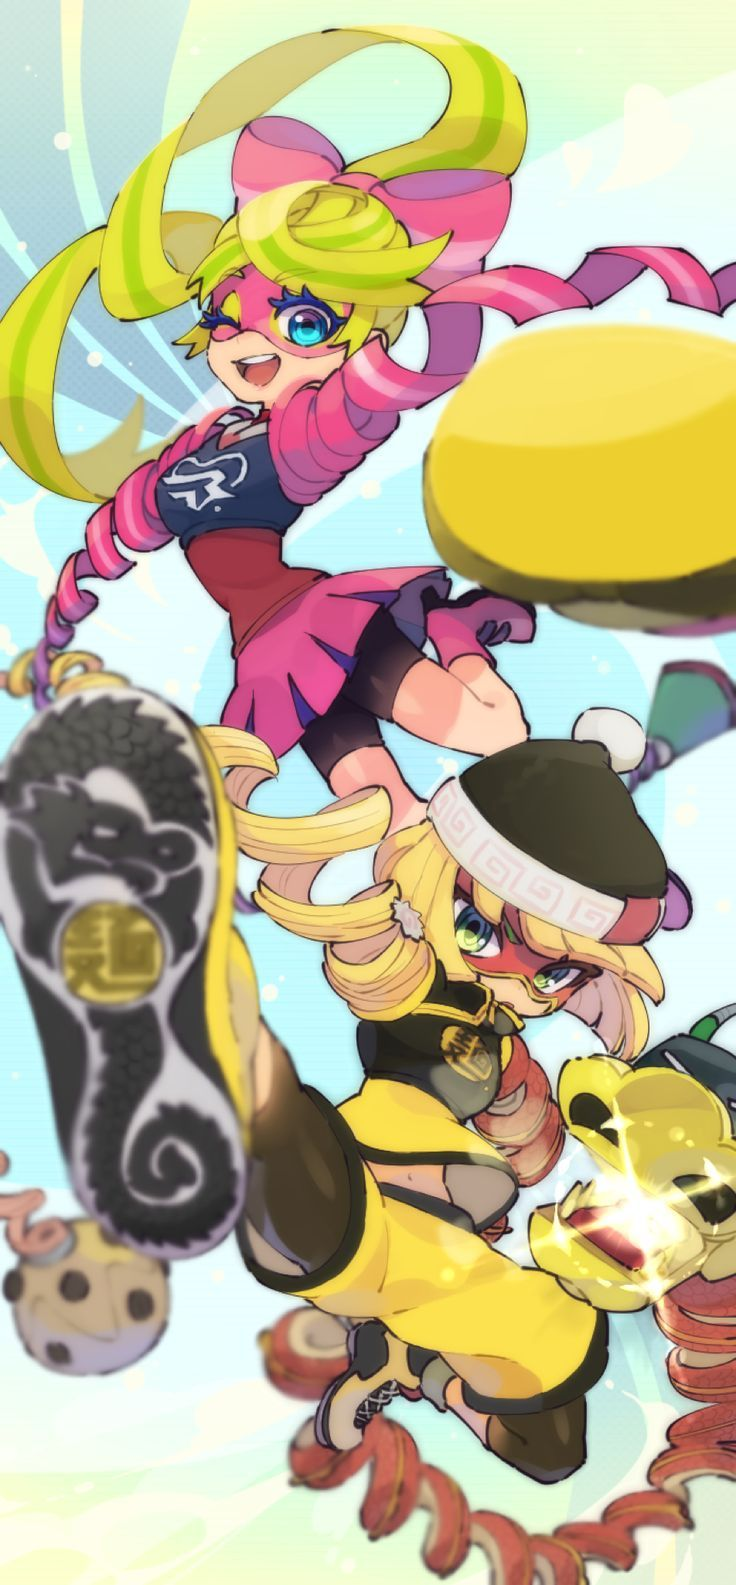 Arms so cute ribbon girl and min min switch nintendo